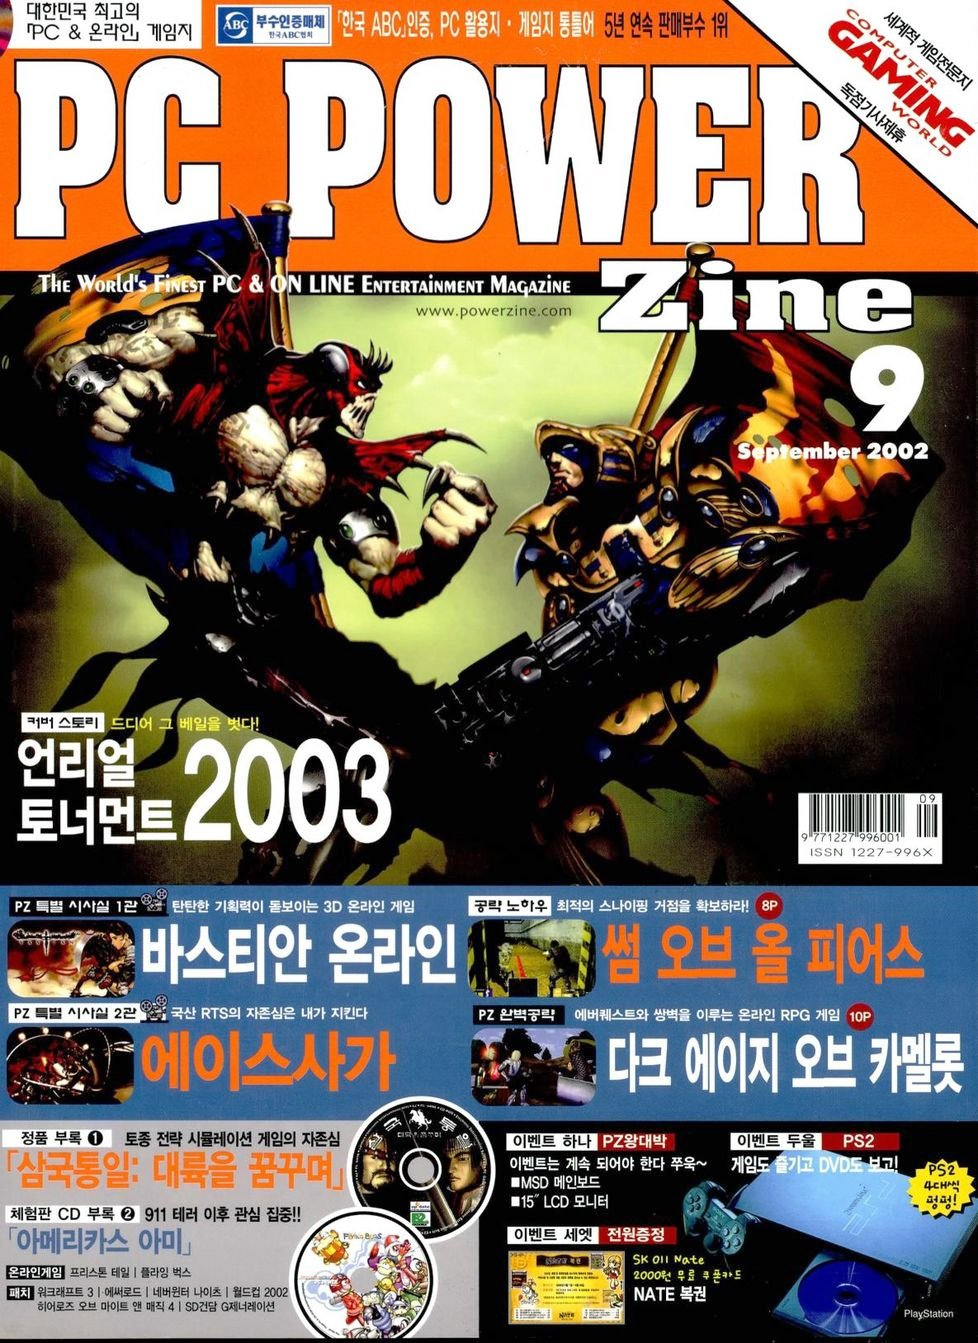 PC Power Zine Issue 086 (September 2002)